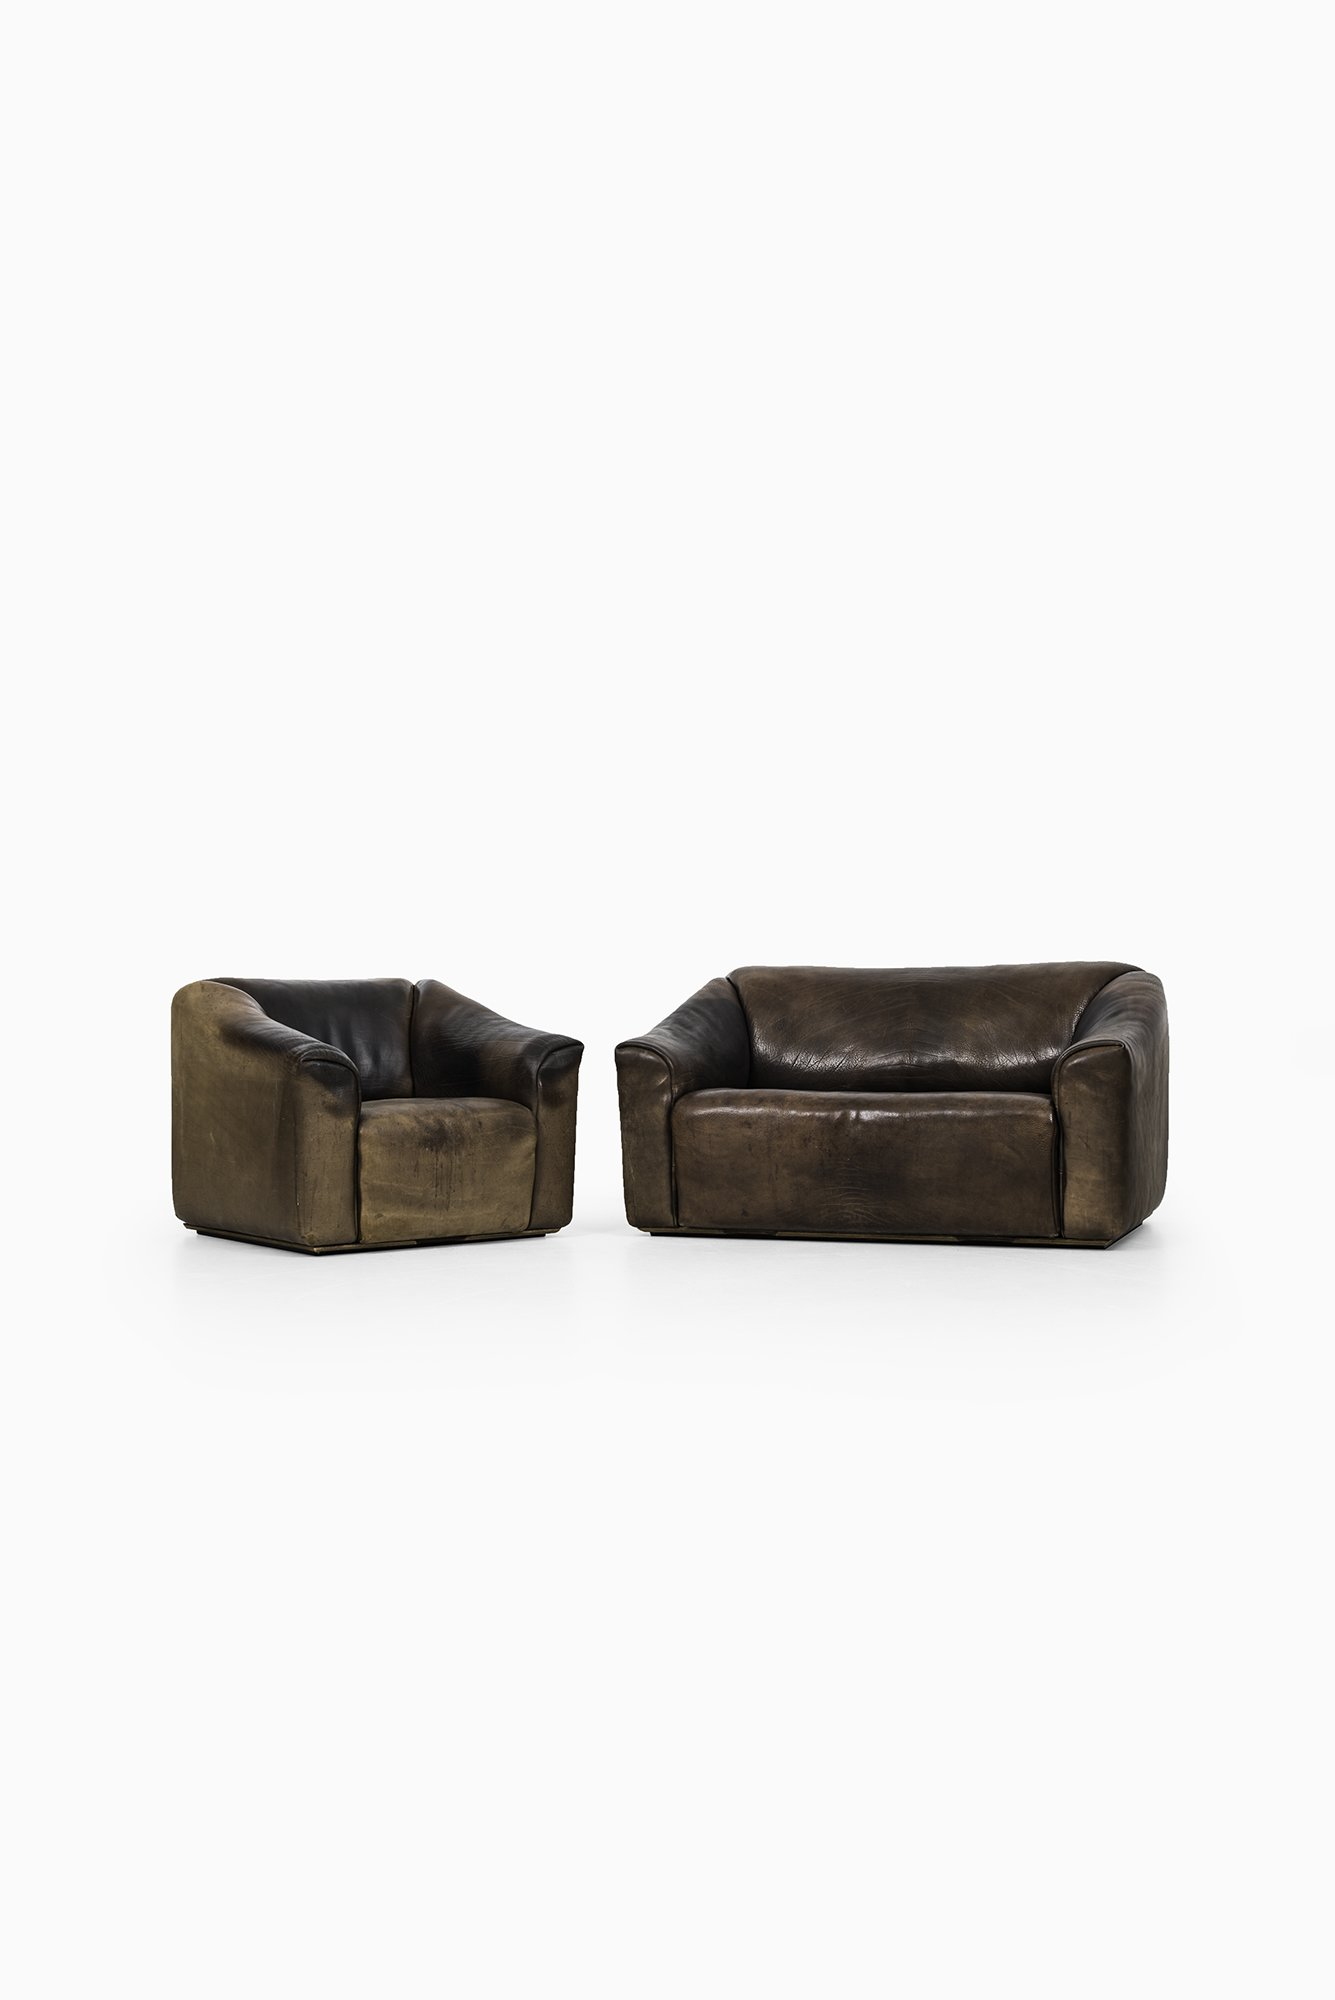 de sede ds 47 sofa and easy chair in thick bullhide at studio schalling. Black Bedroom Furniture Sets. Home Design Ideas